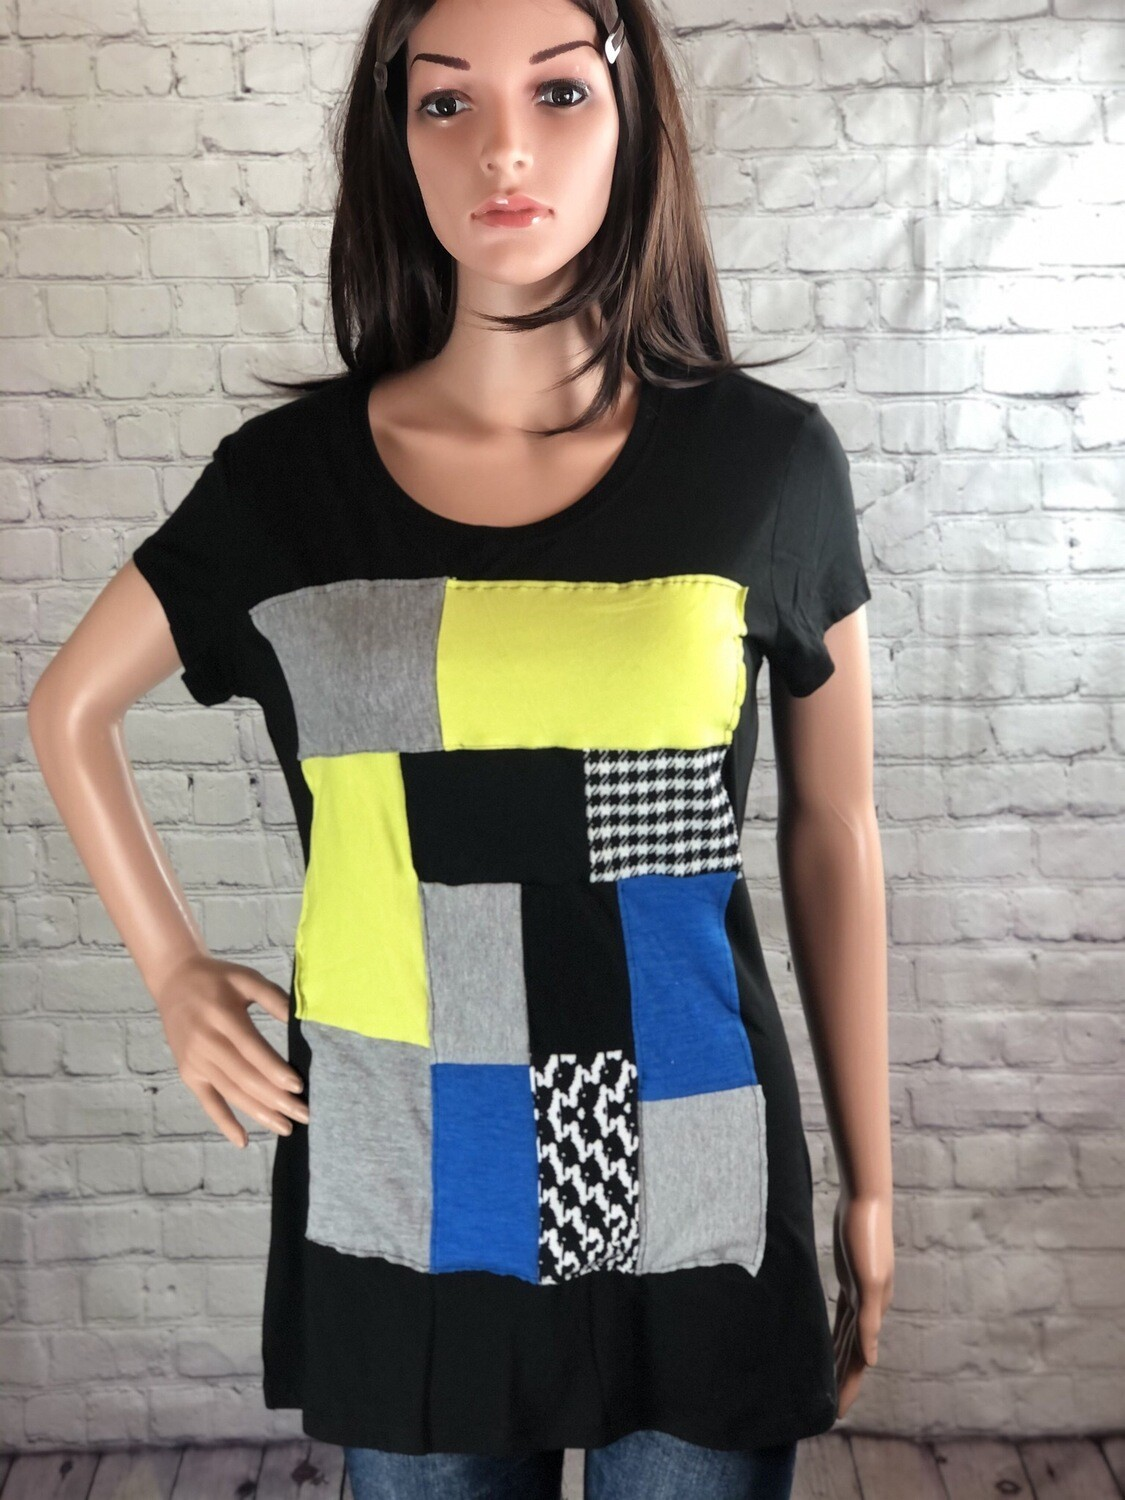 S Threads Patchwork Recycled Tshirt Colorblock Recreated Upcycled Fabric Comfy Tee Size L